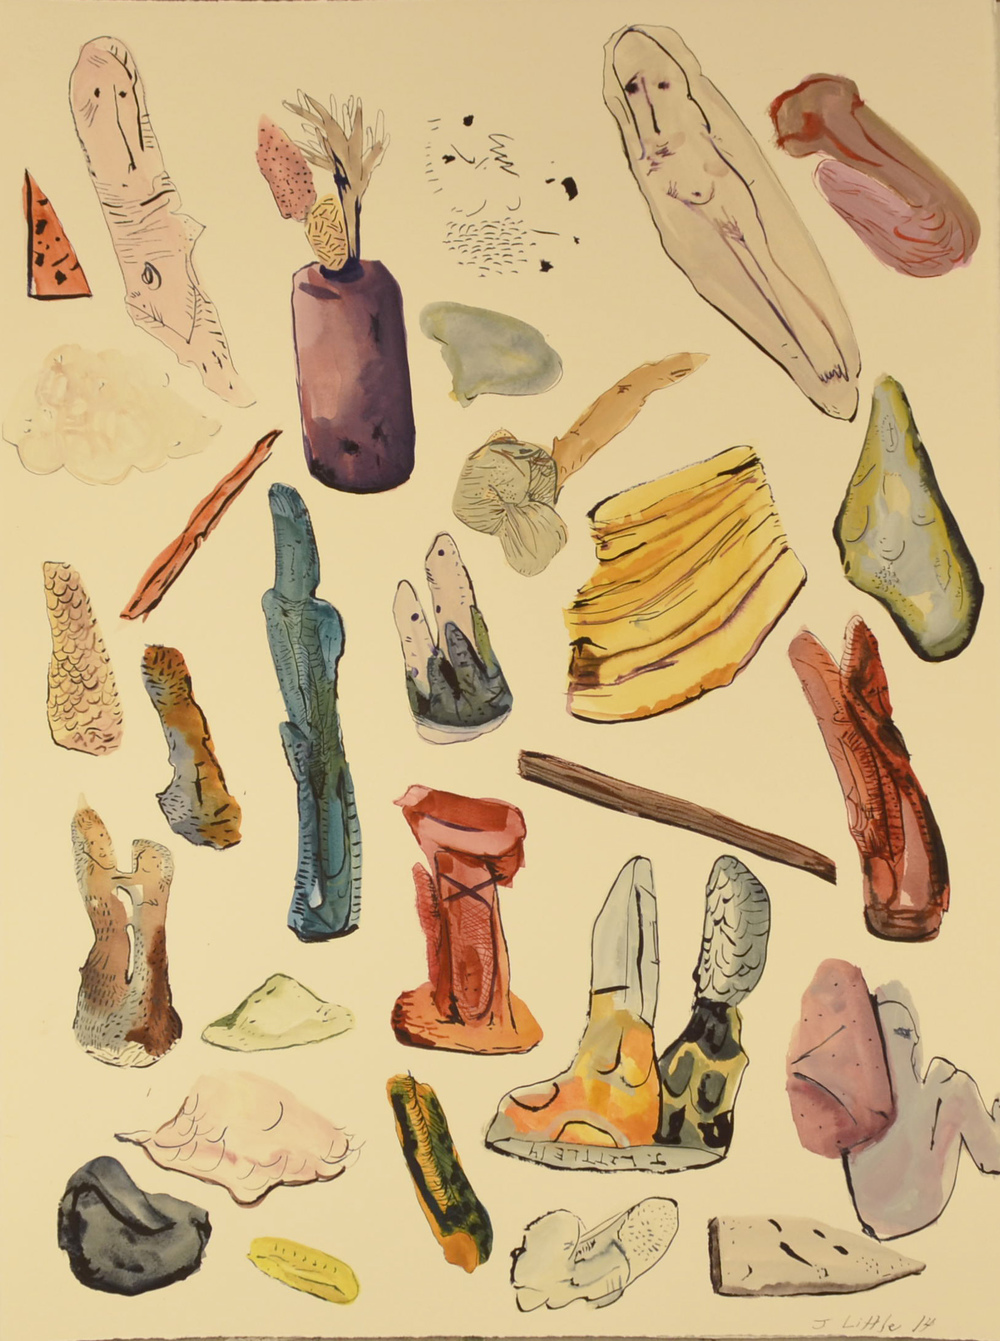 Object Inventory, 22 x 30 inches, watercolor on paper,  2014.